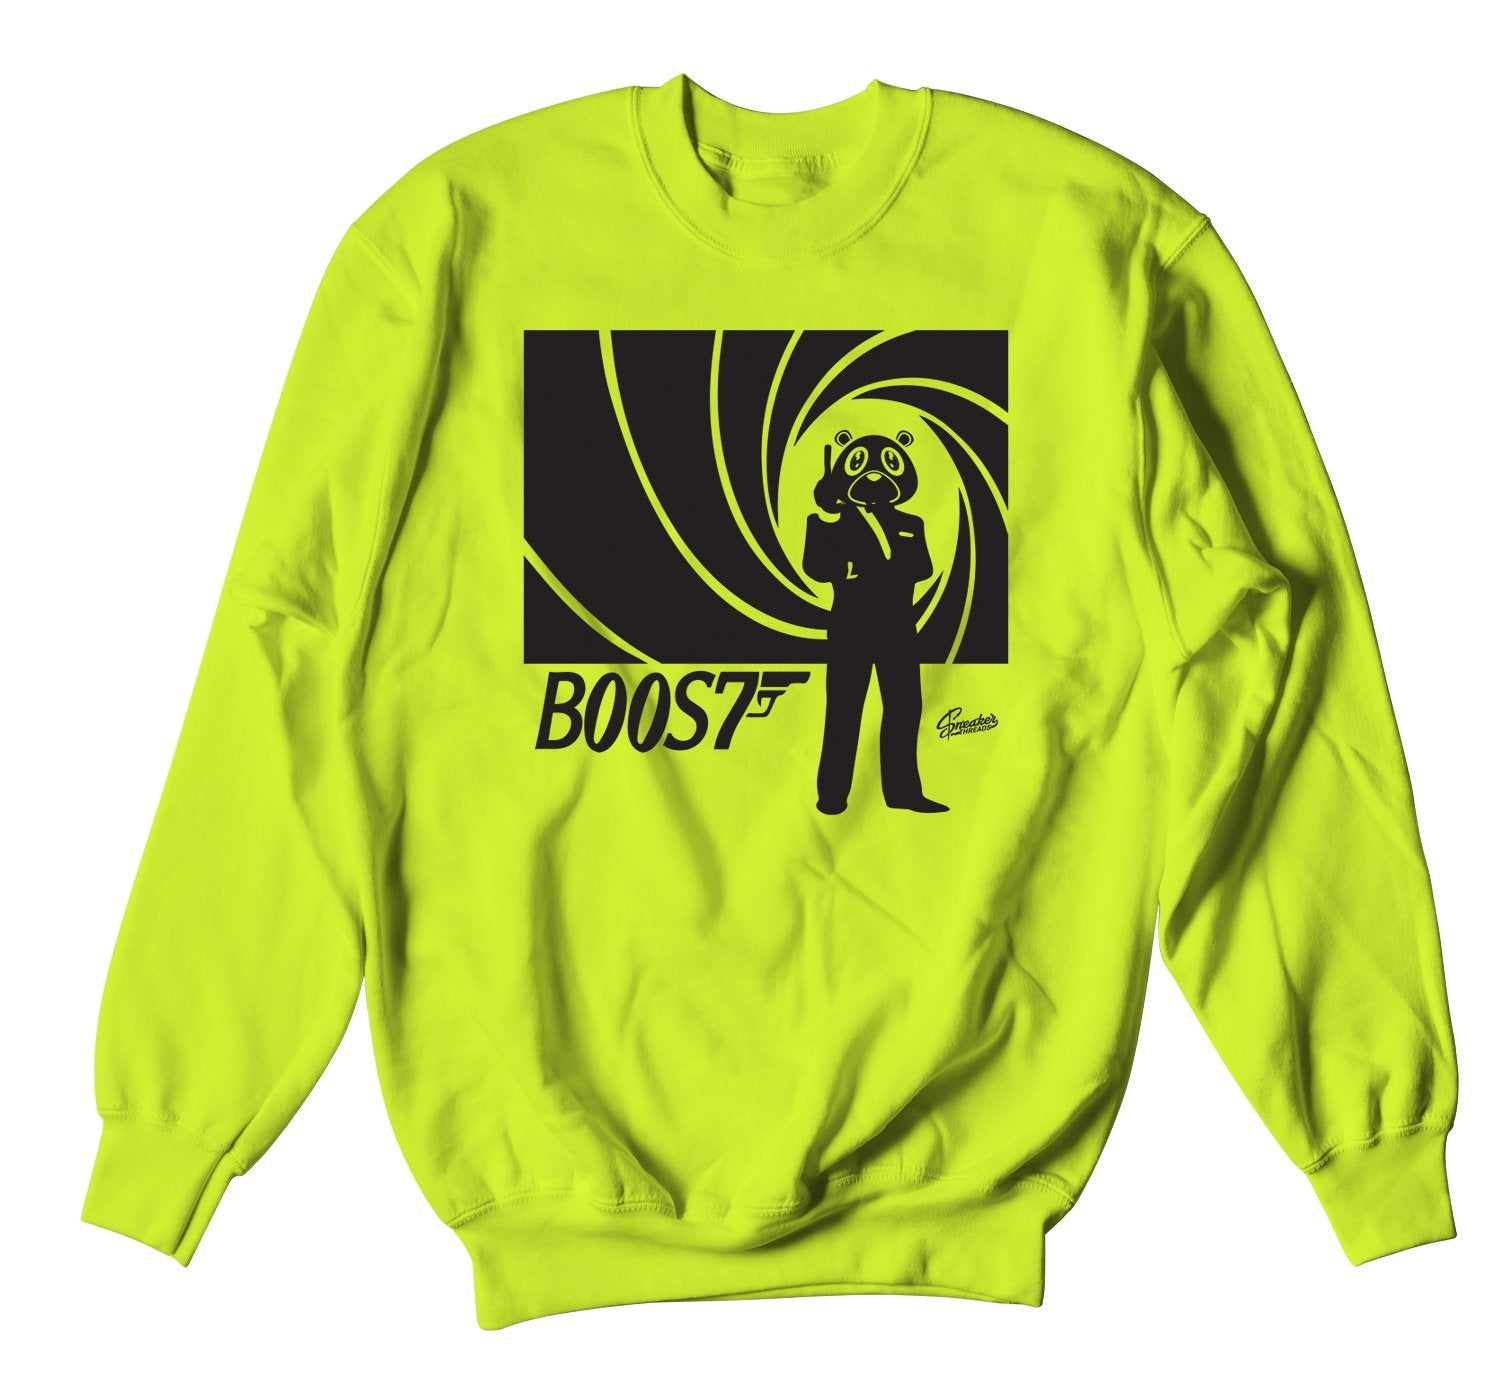 Neon green crewnecks designed to match the yeezy yeezreel sneakers